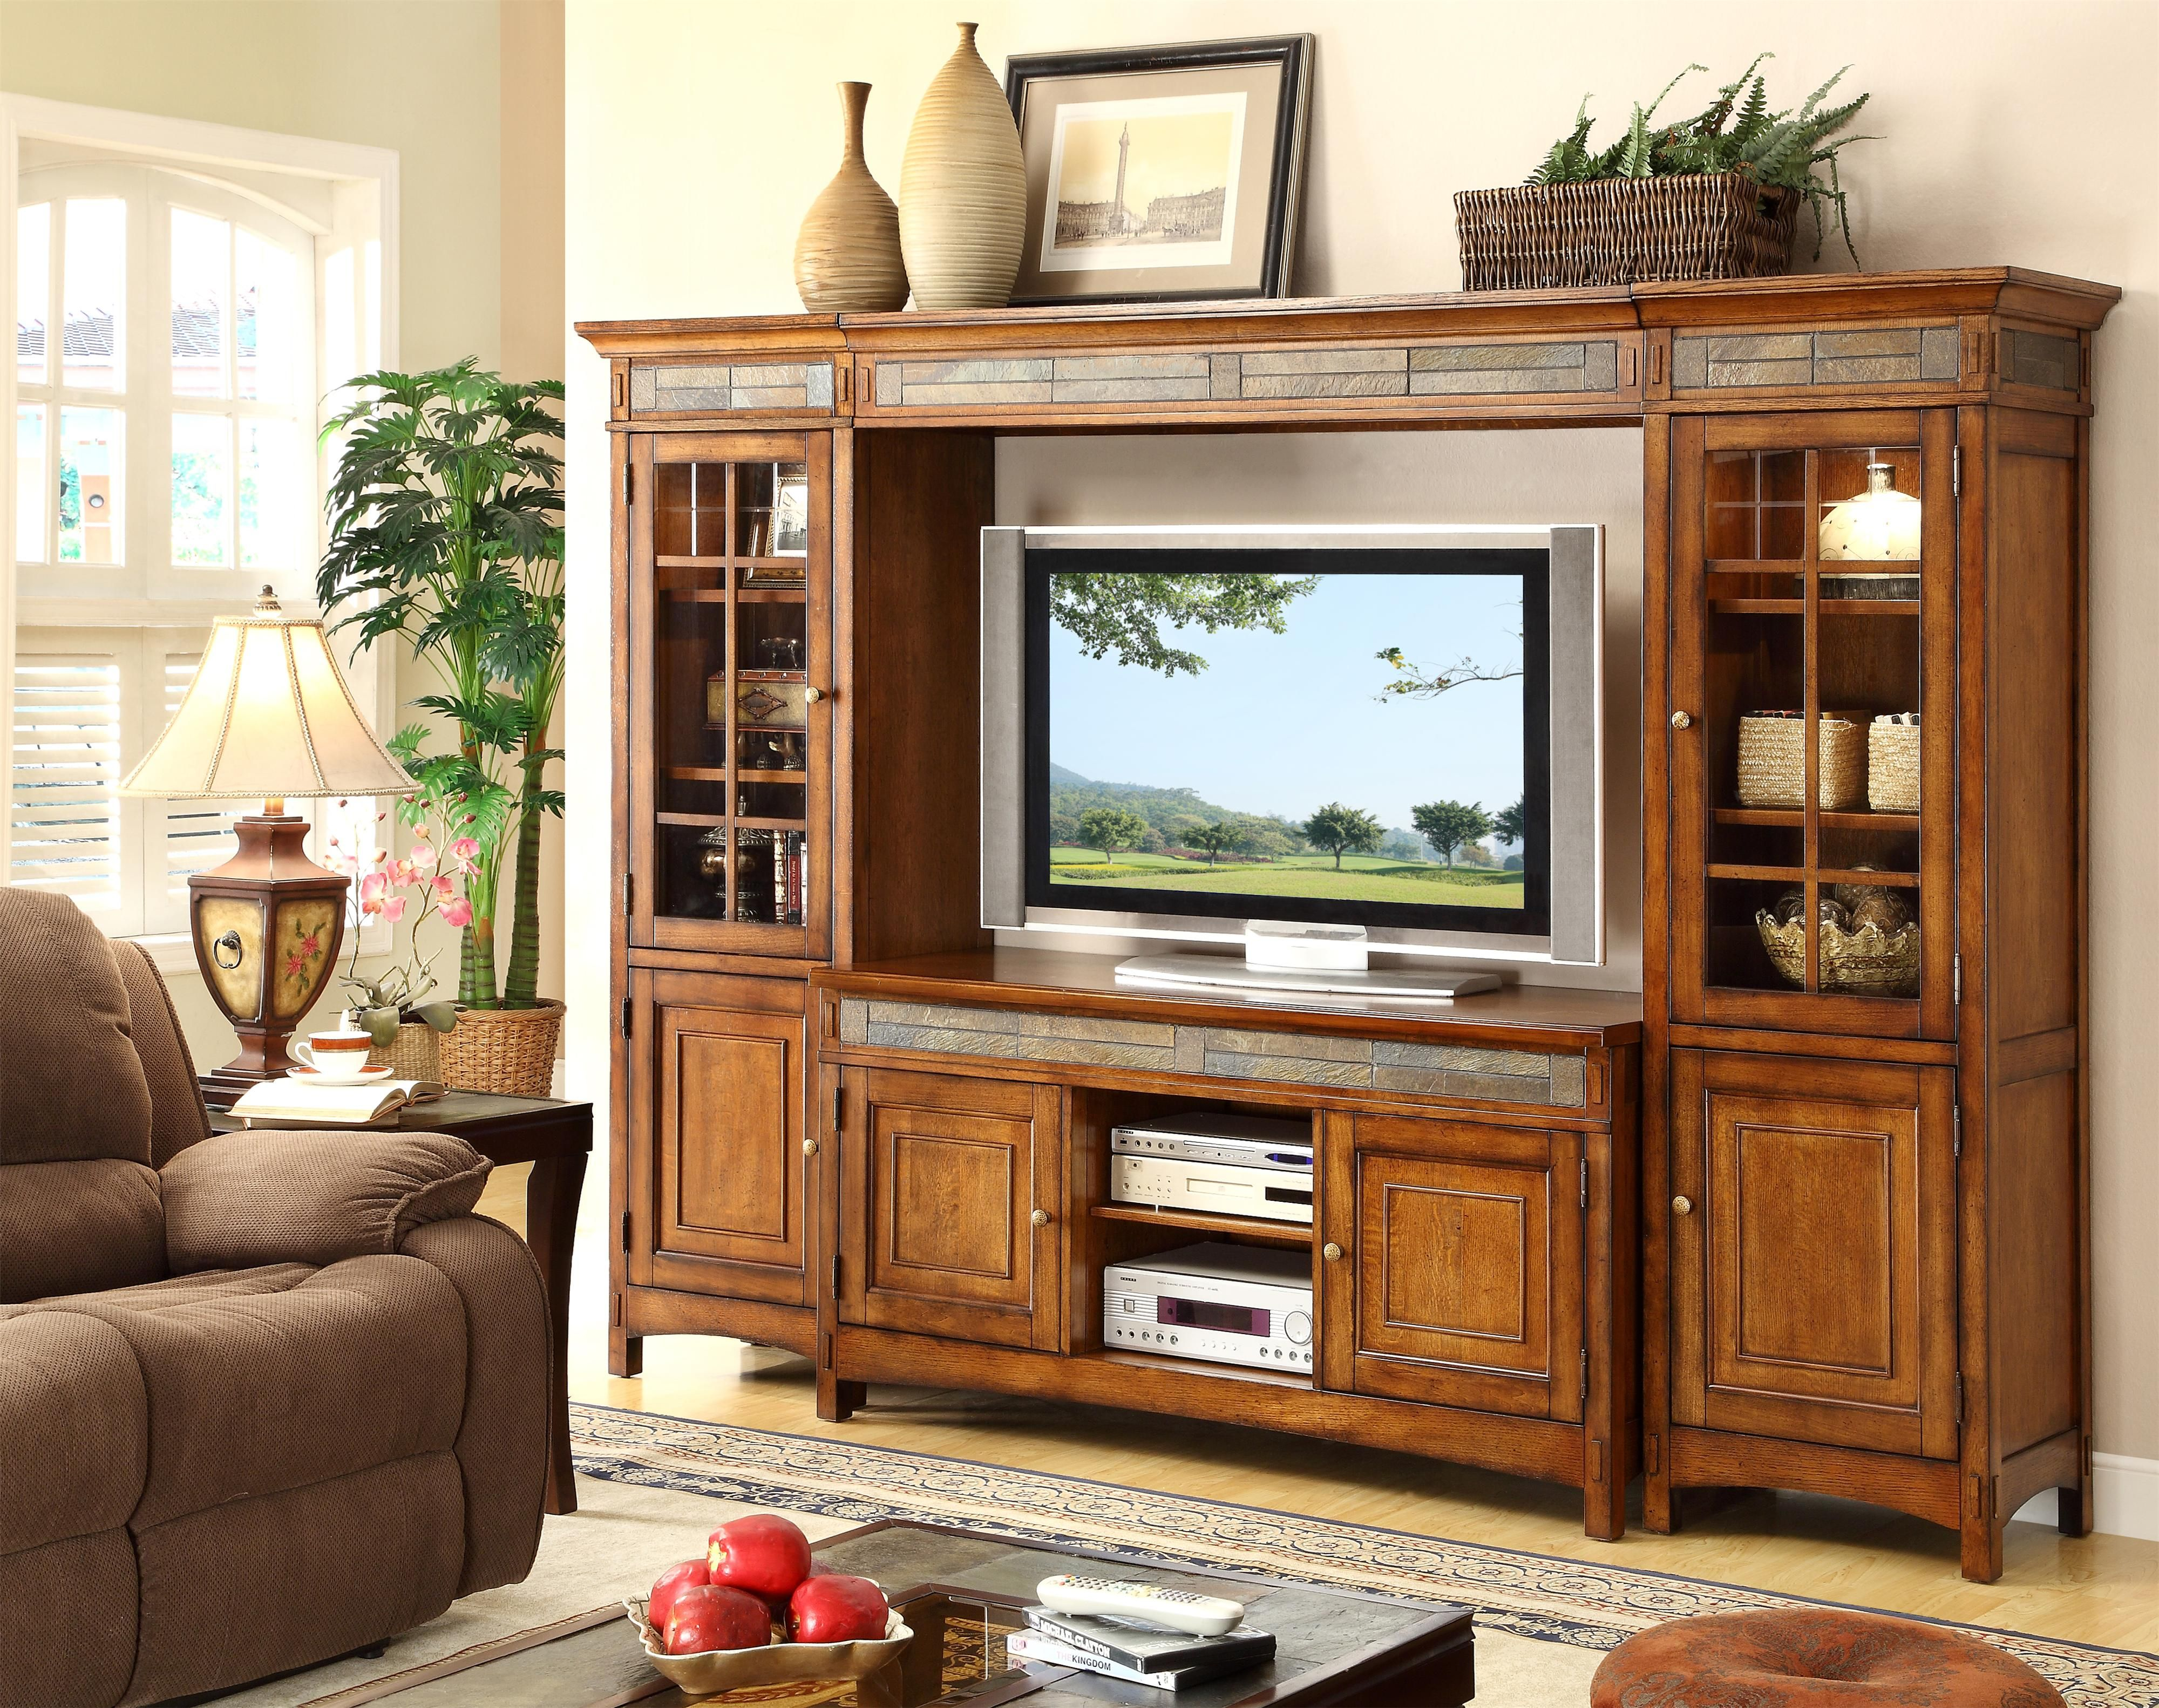 Craftsman Home 6 Door Entertainment Wall Unit With Slate Tile Accents By Riversid Riverside Furniture Home Entertainment Centers Traditional Design Living Room